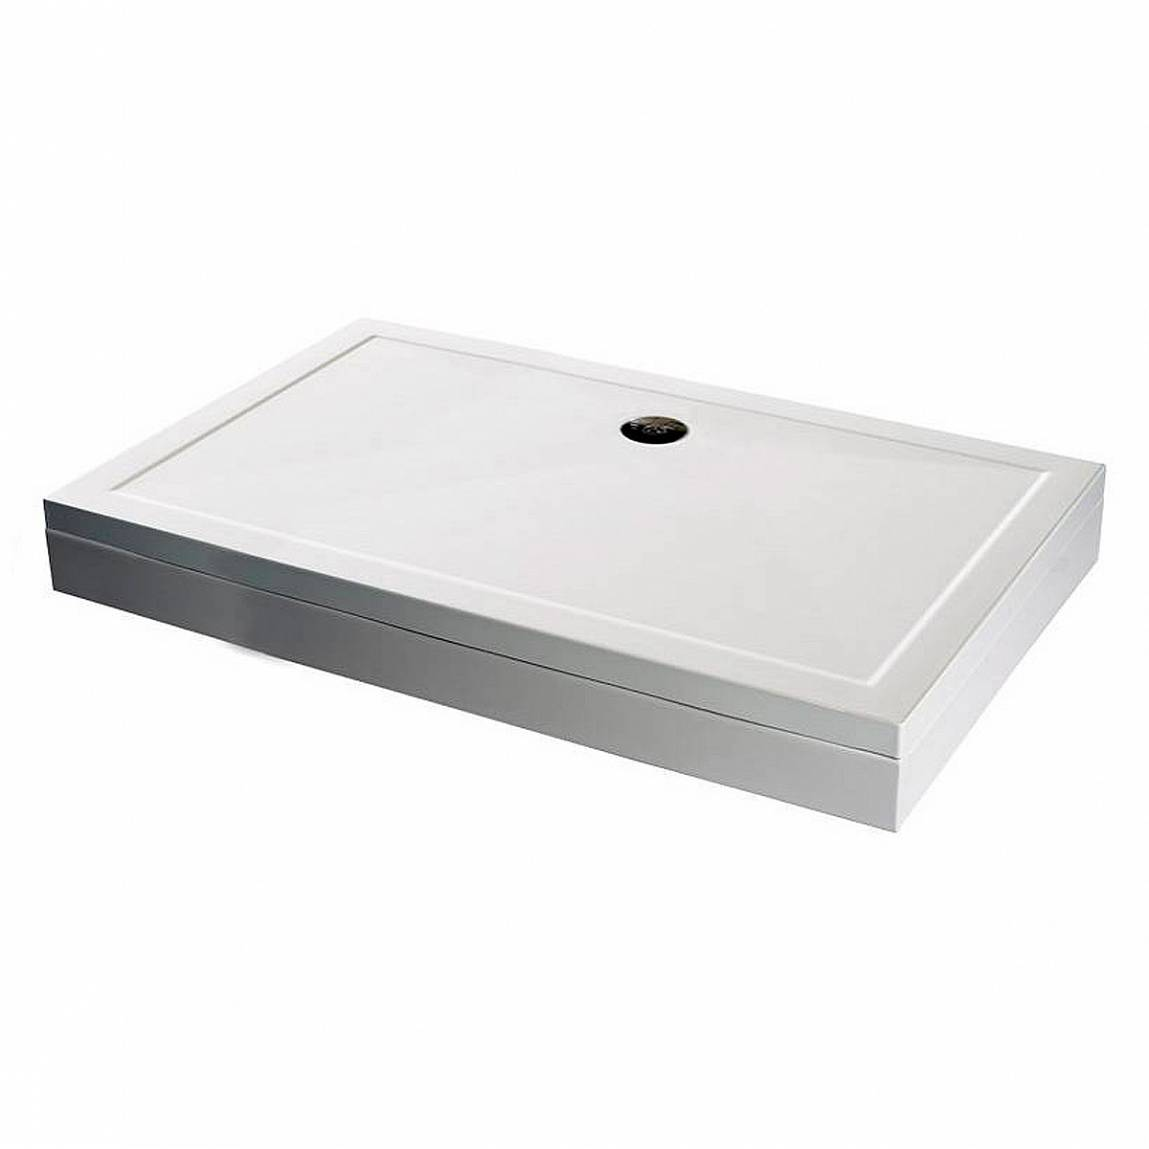 Image of Rectangular Stone Shower Tray & Riser Kit 900 x 800